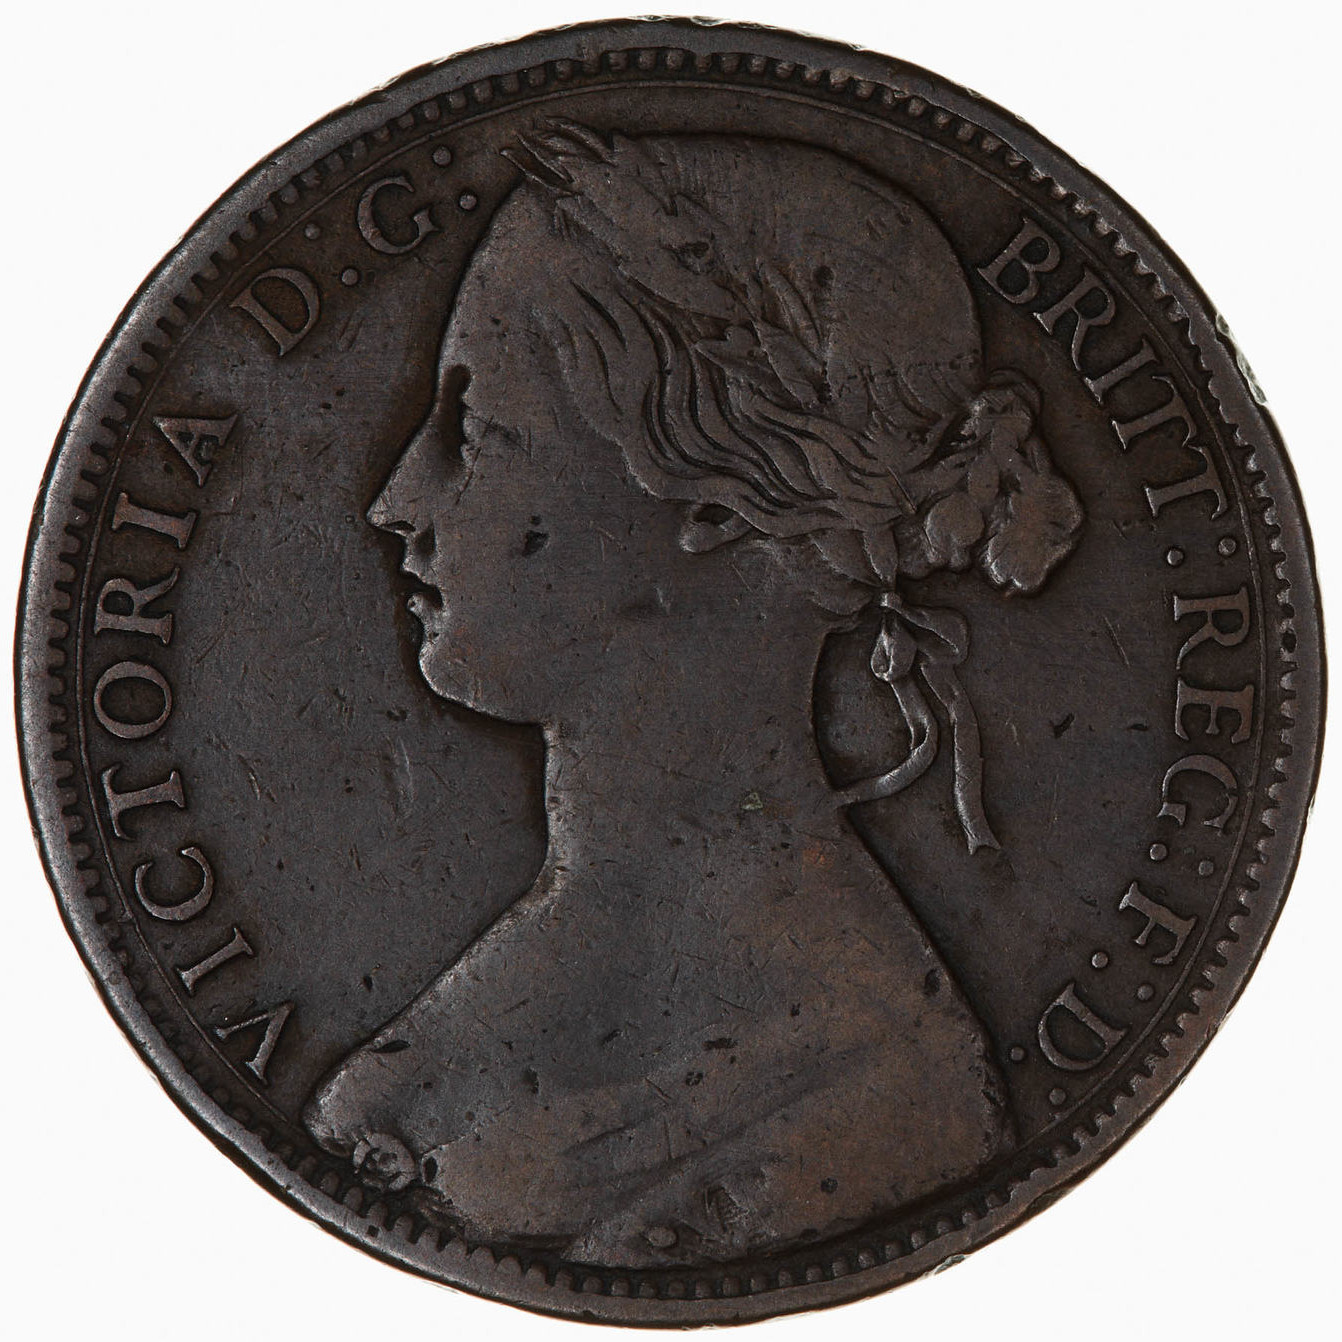 Penny 1866: Photo Coin - Penny, Queen Victoria, Great Britain, 1866